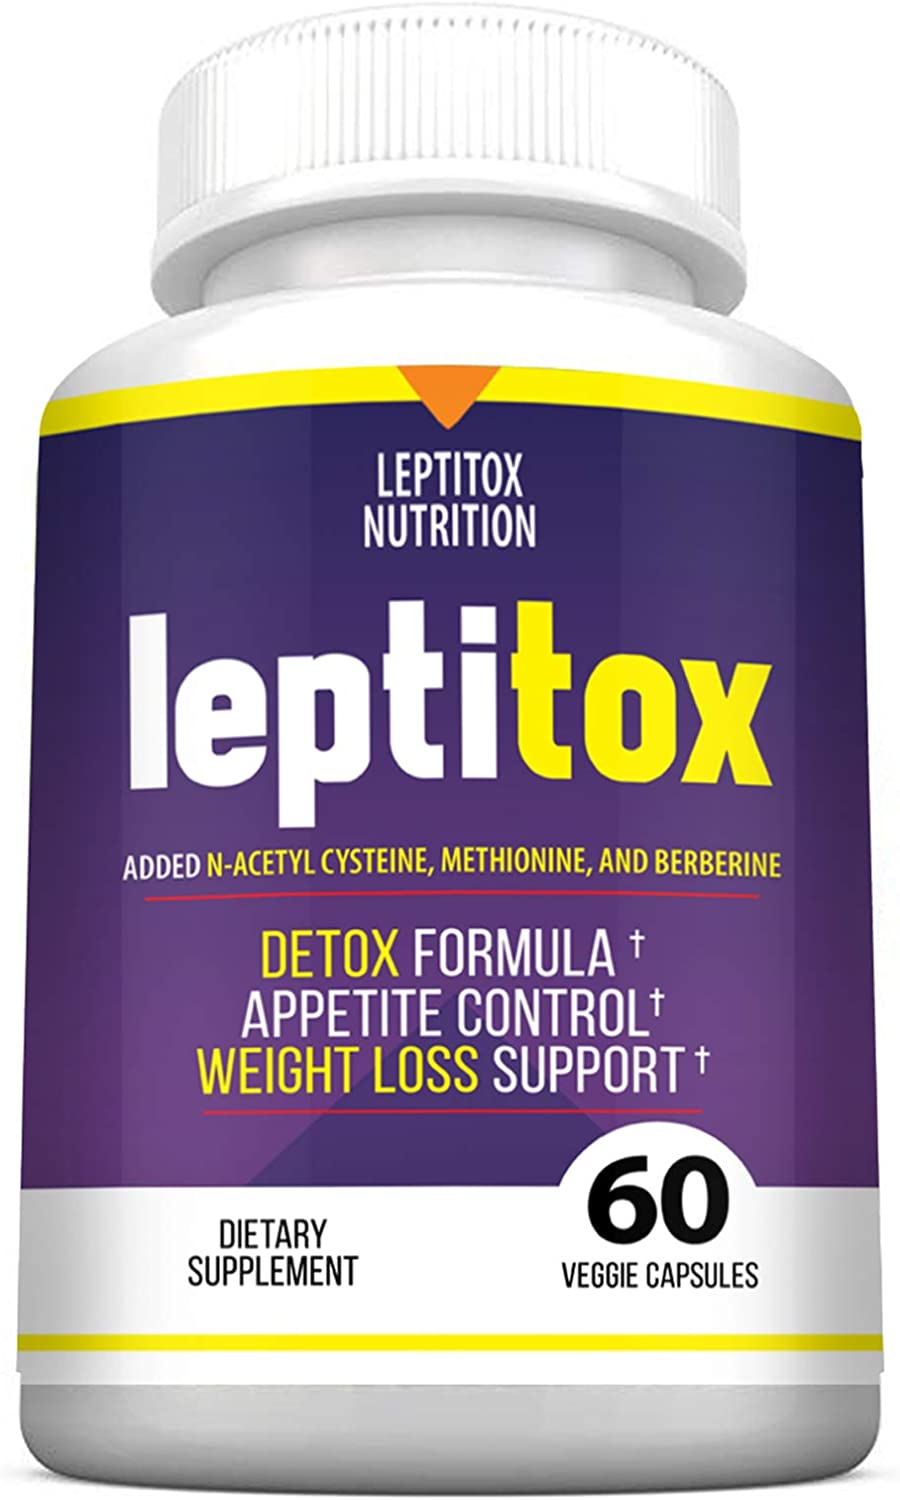 Leptitox Weight Loss Giveaway Free No Survey